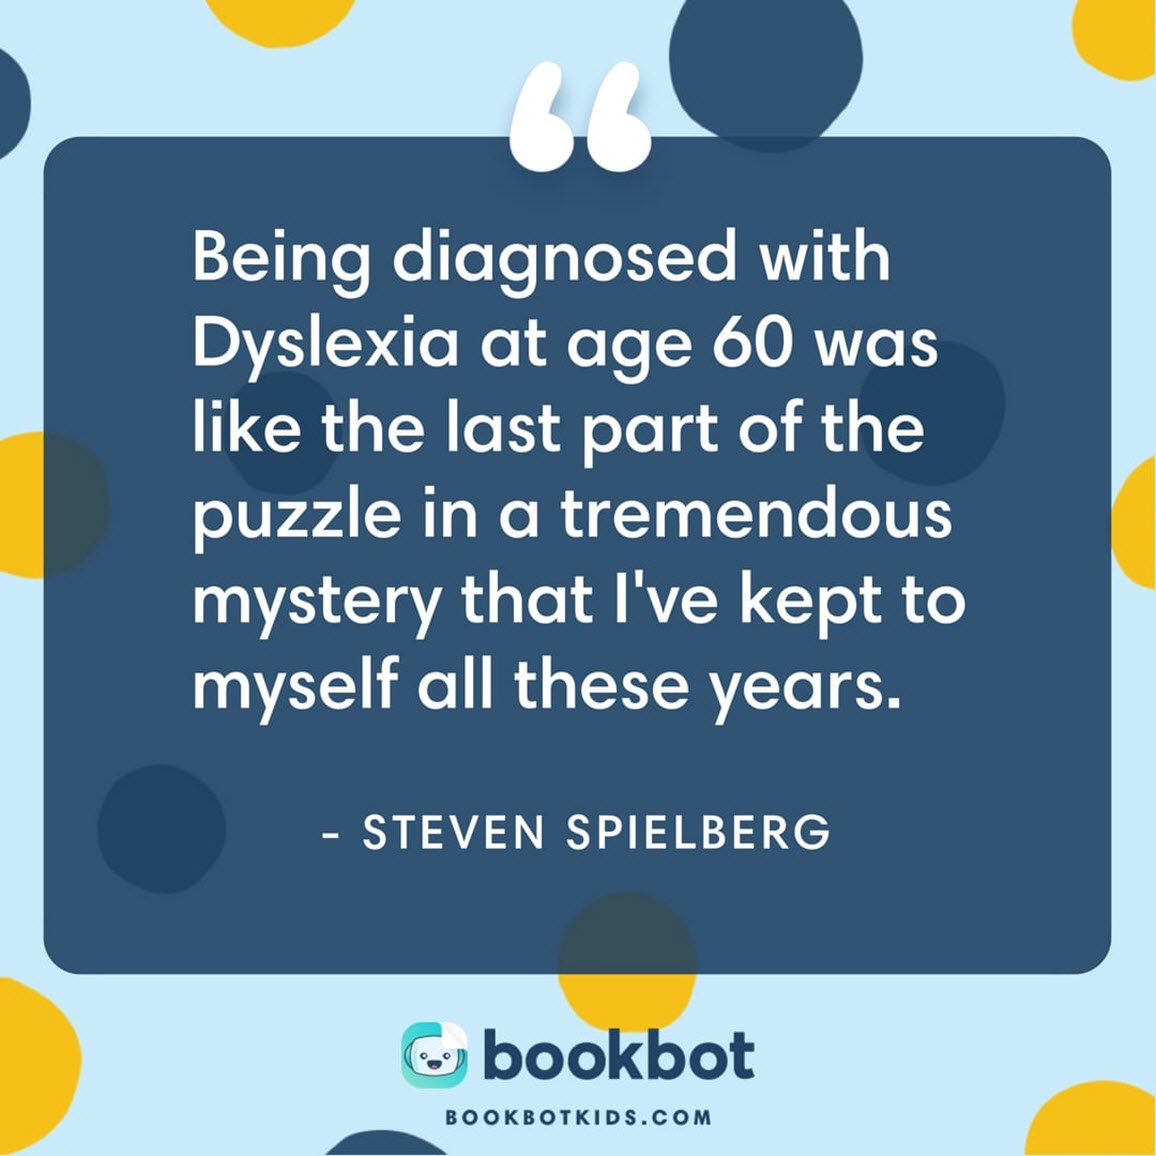 Being diagnosed with Dyslexia at age 60 was like the last puzzle part in a tremendous mystery that I've kept to myself all these years. – Steven Spielberg